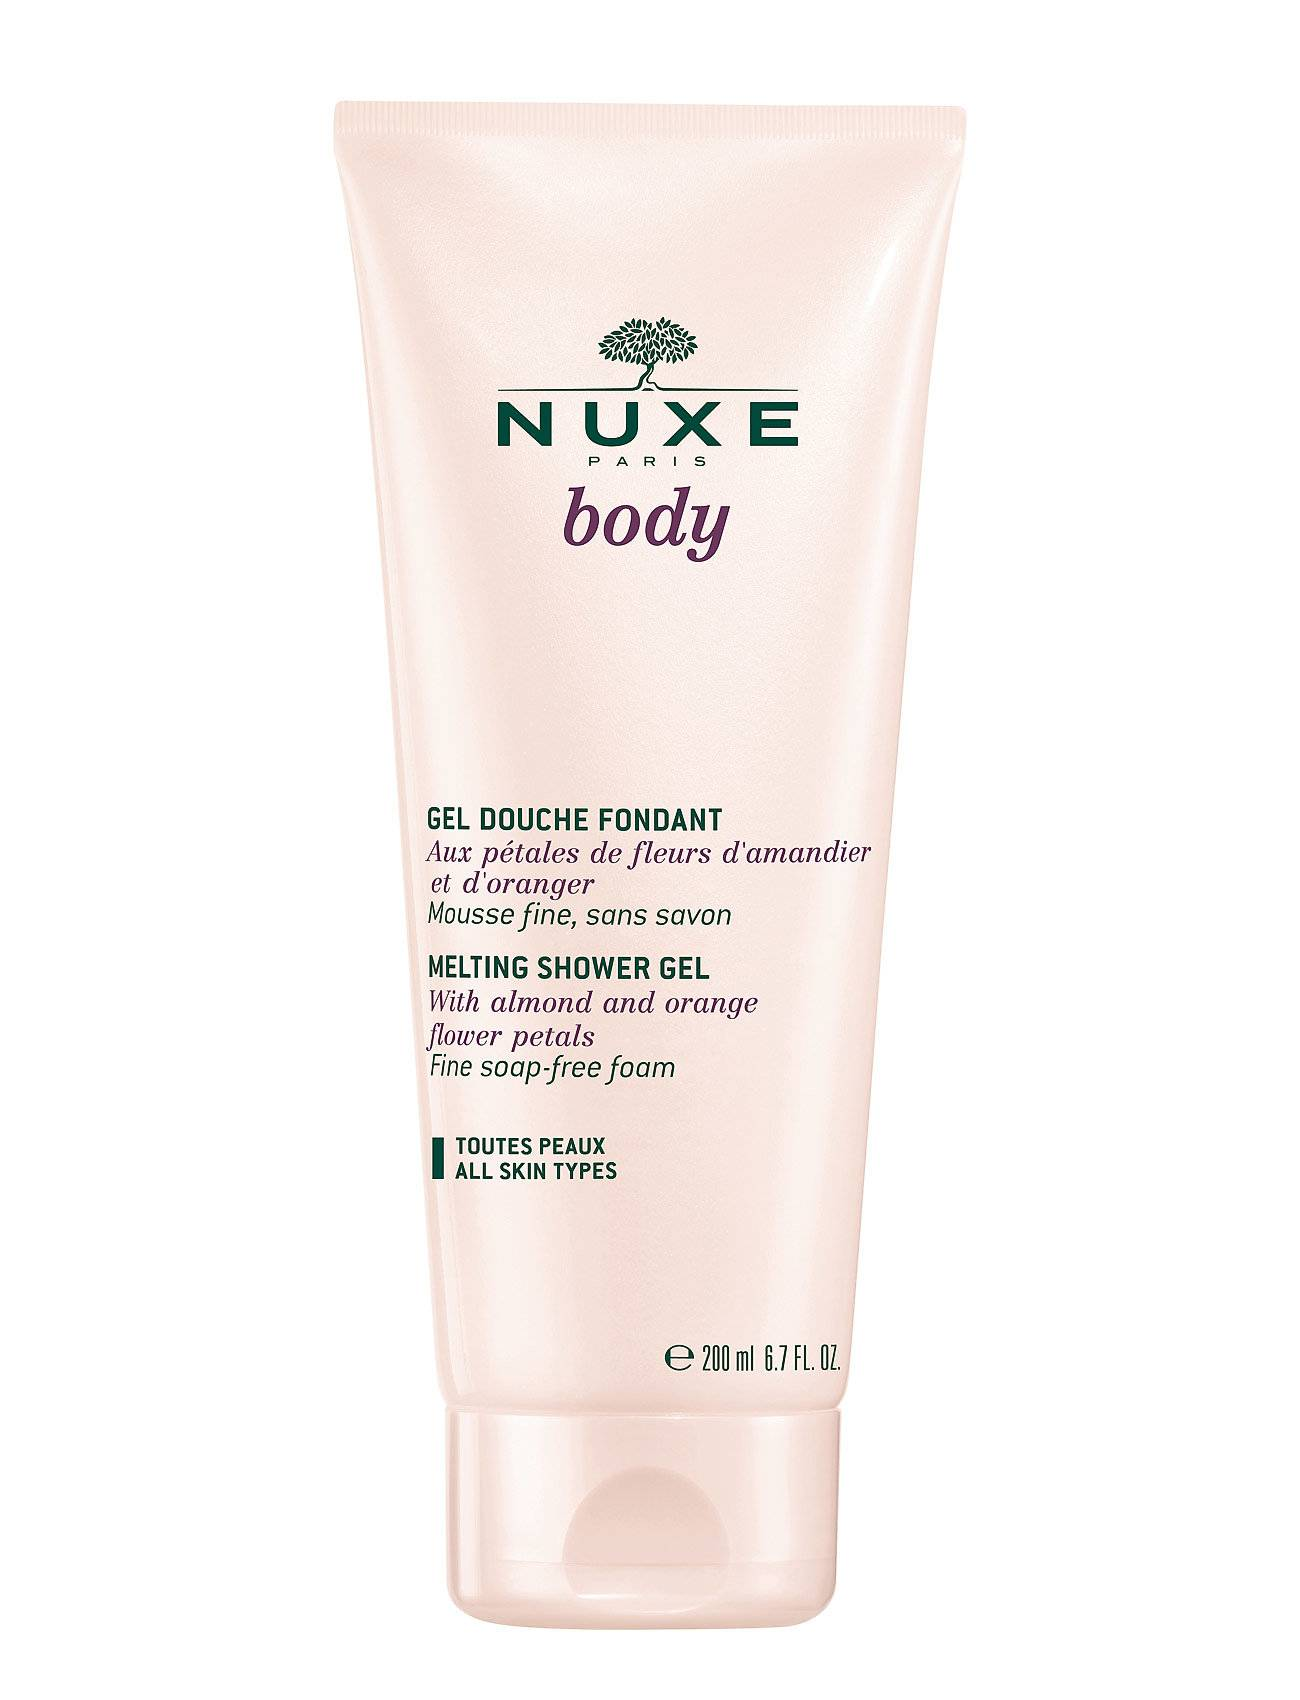 NUXE Fondant Shower Gel